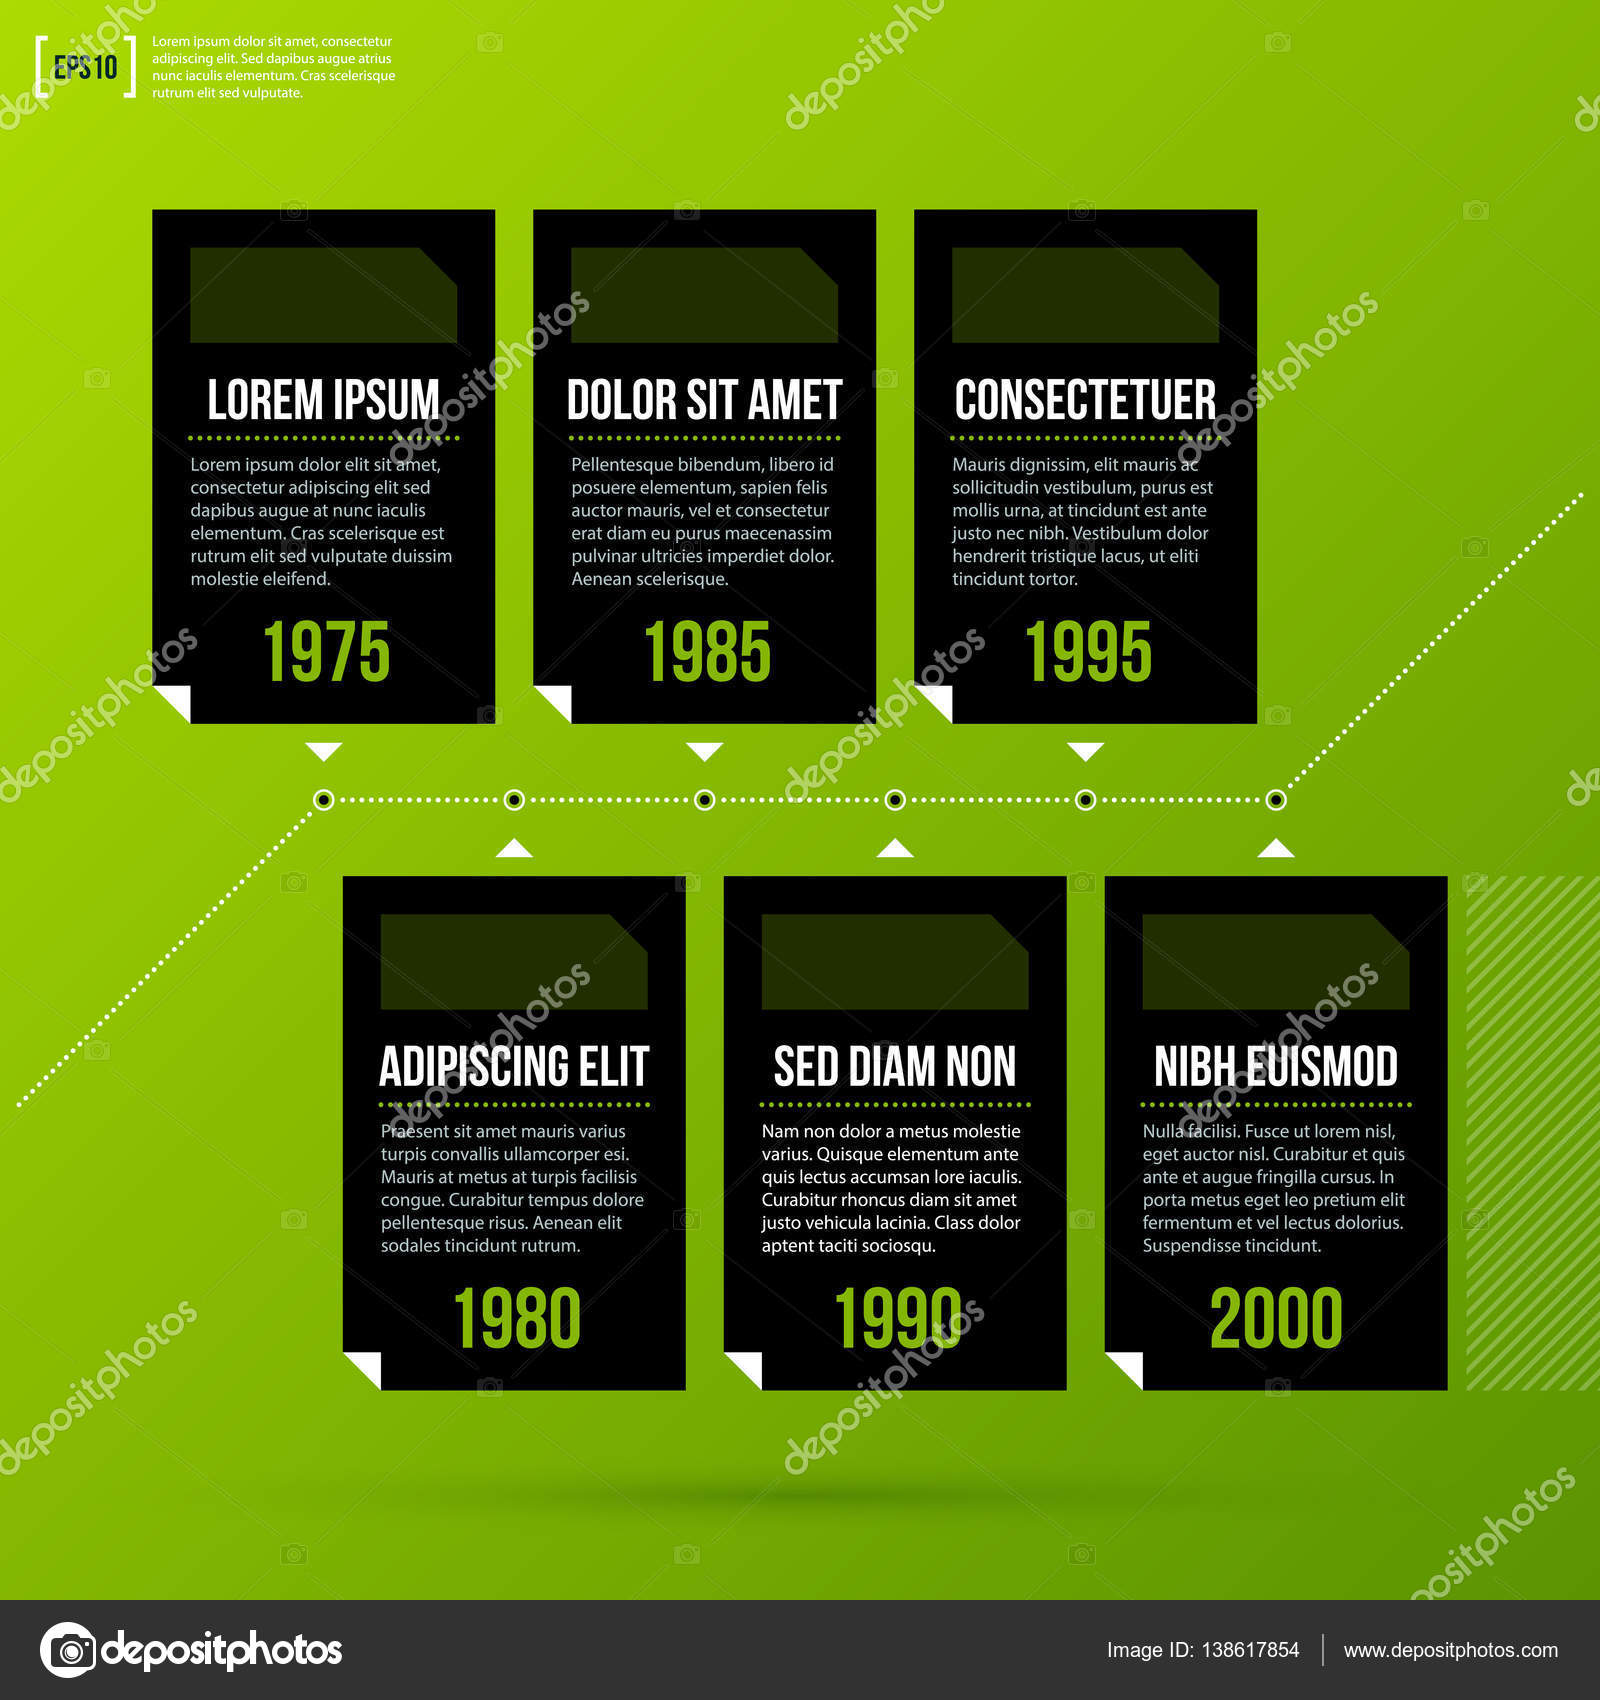 timeline template on fresh green background useful for